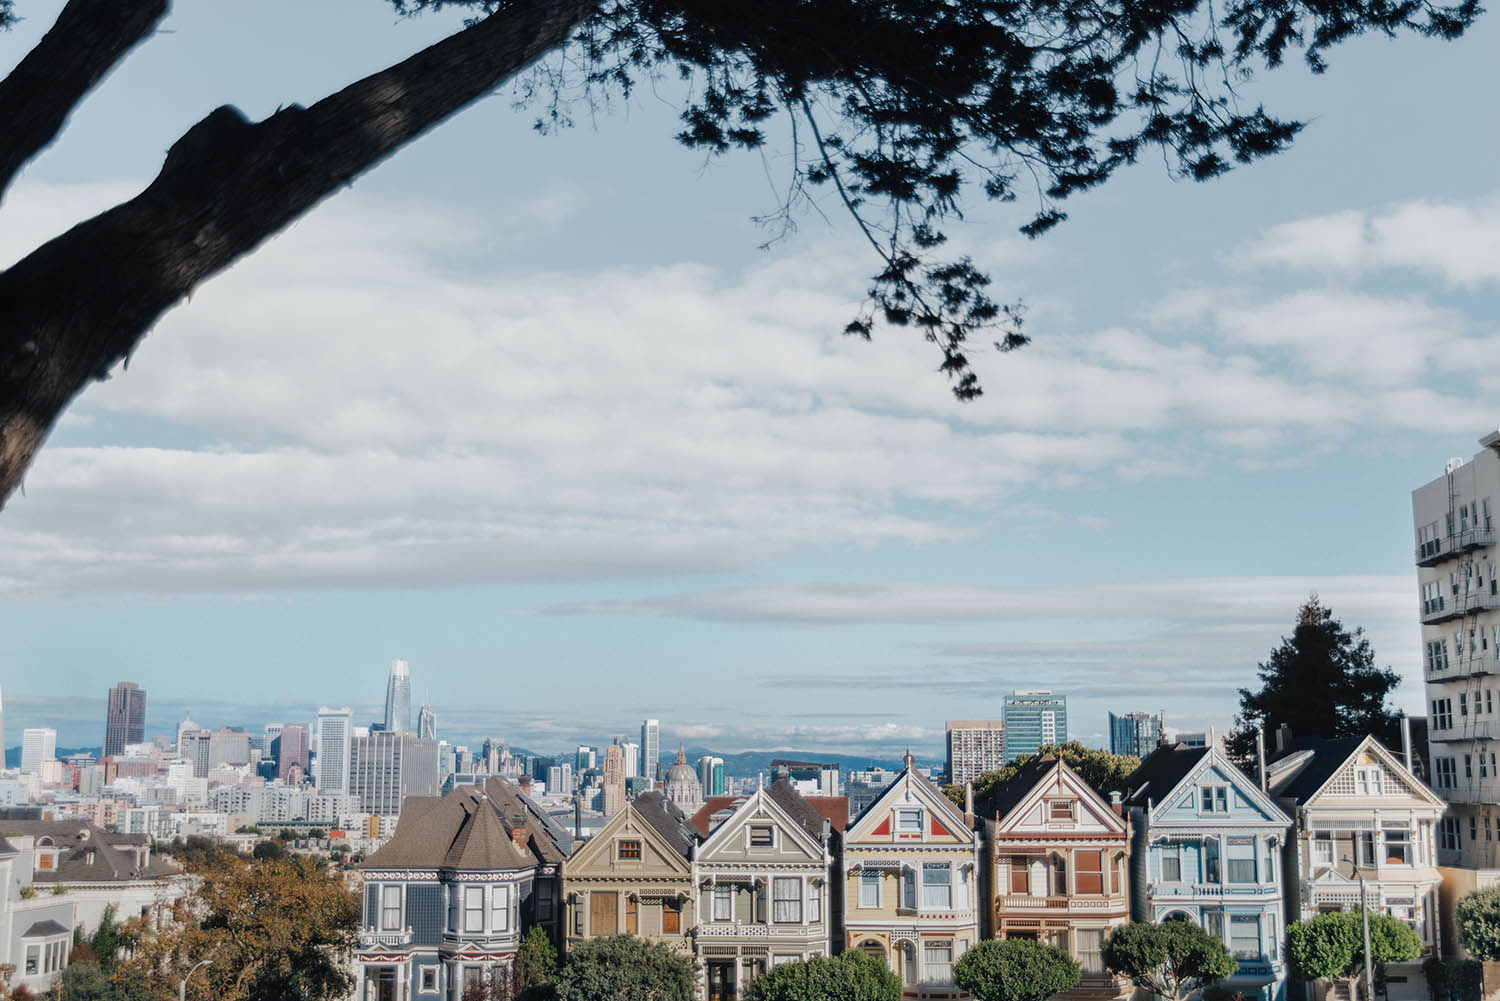 Painted Ladies - Instagramvänliga platser i San Francisco